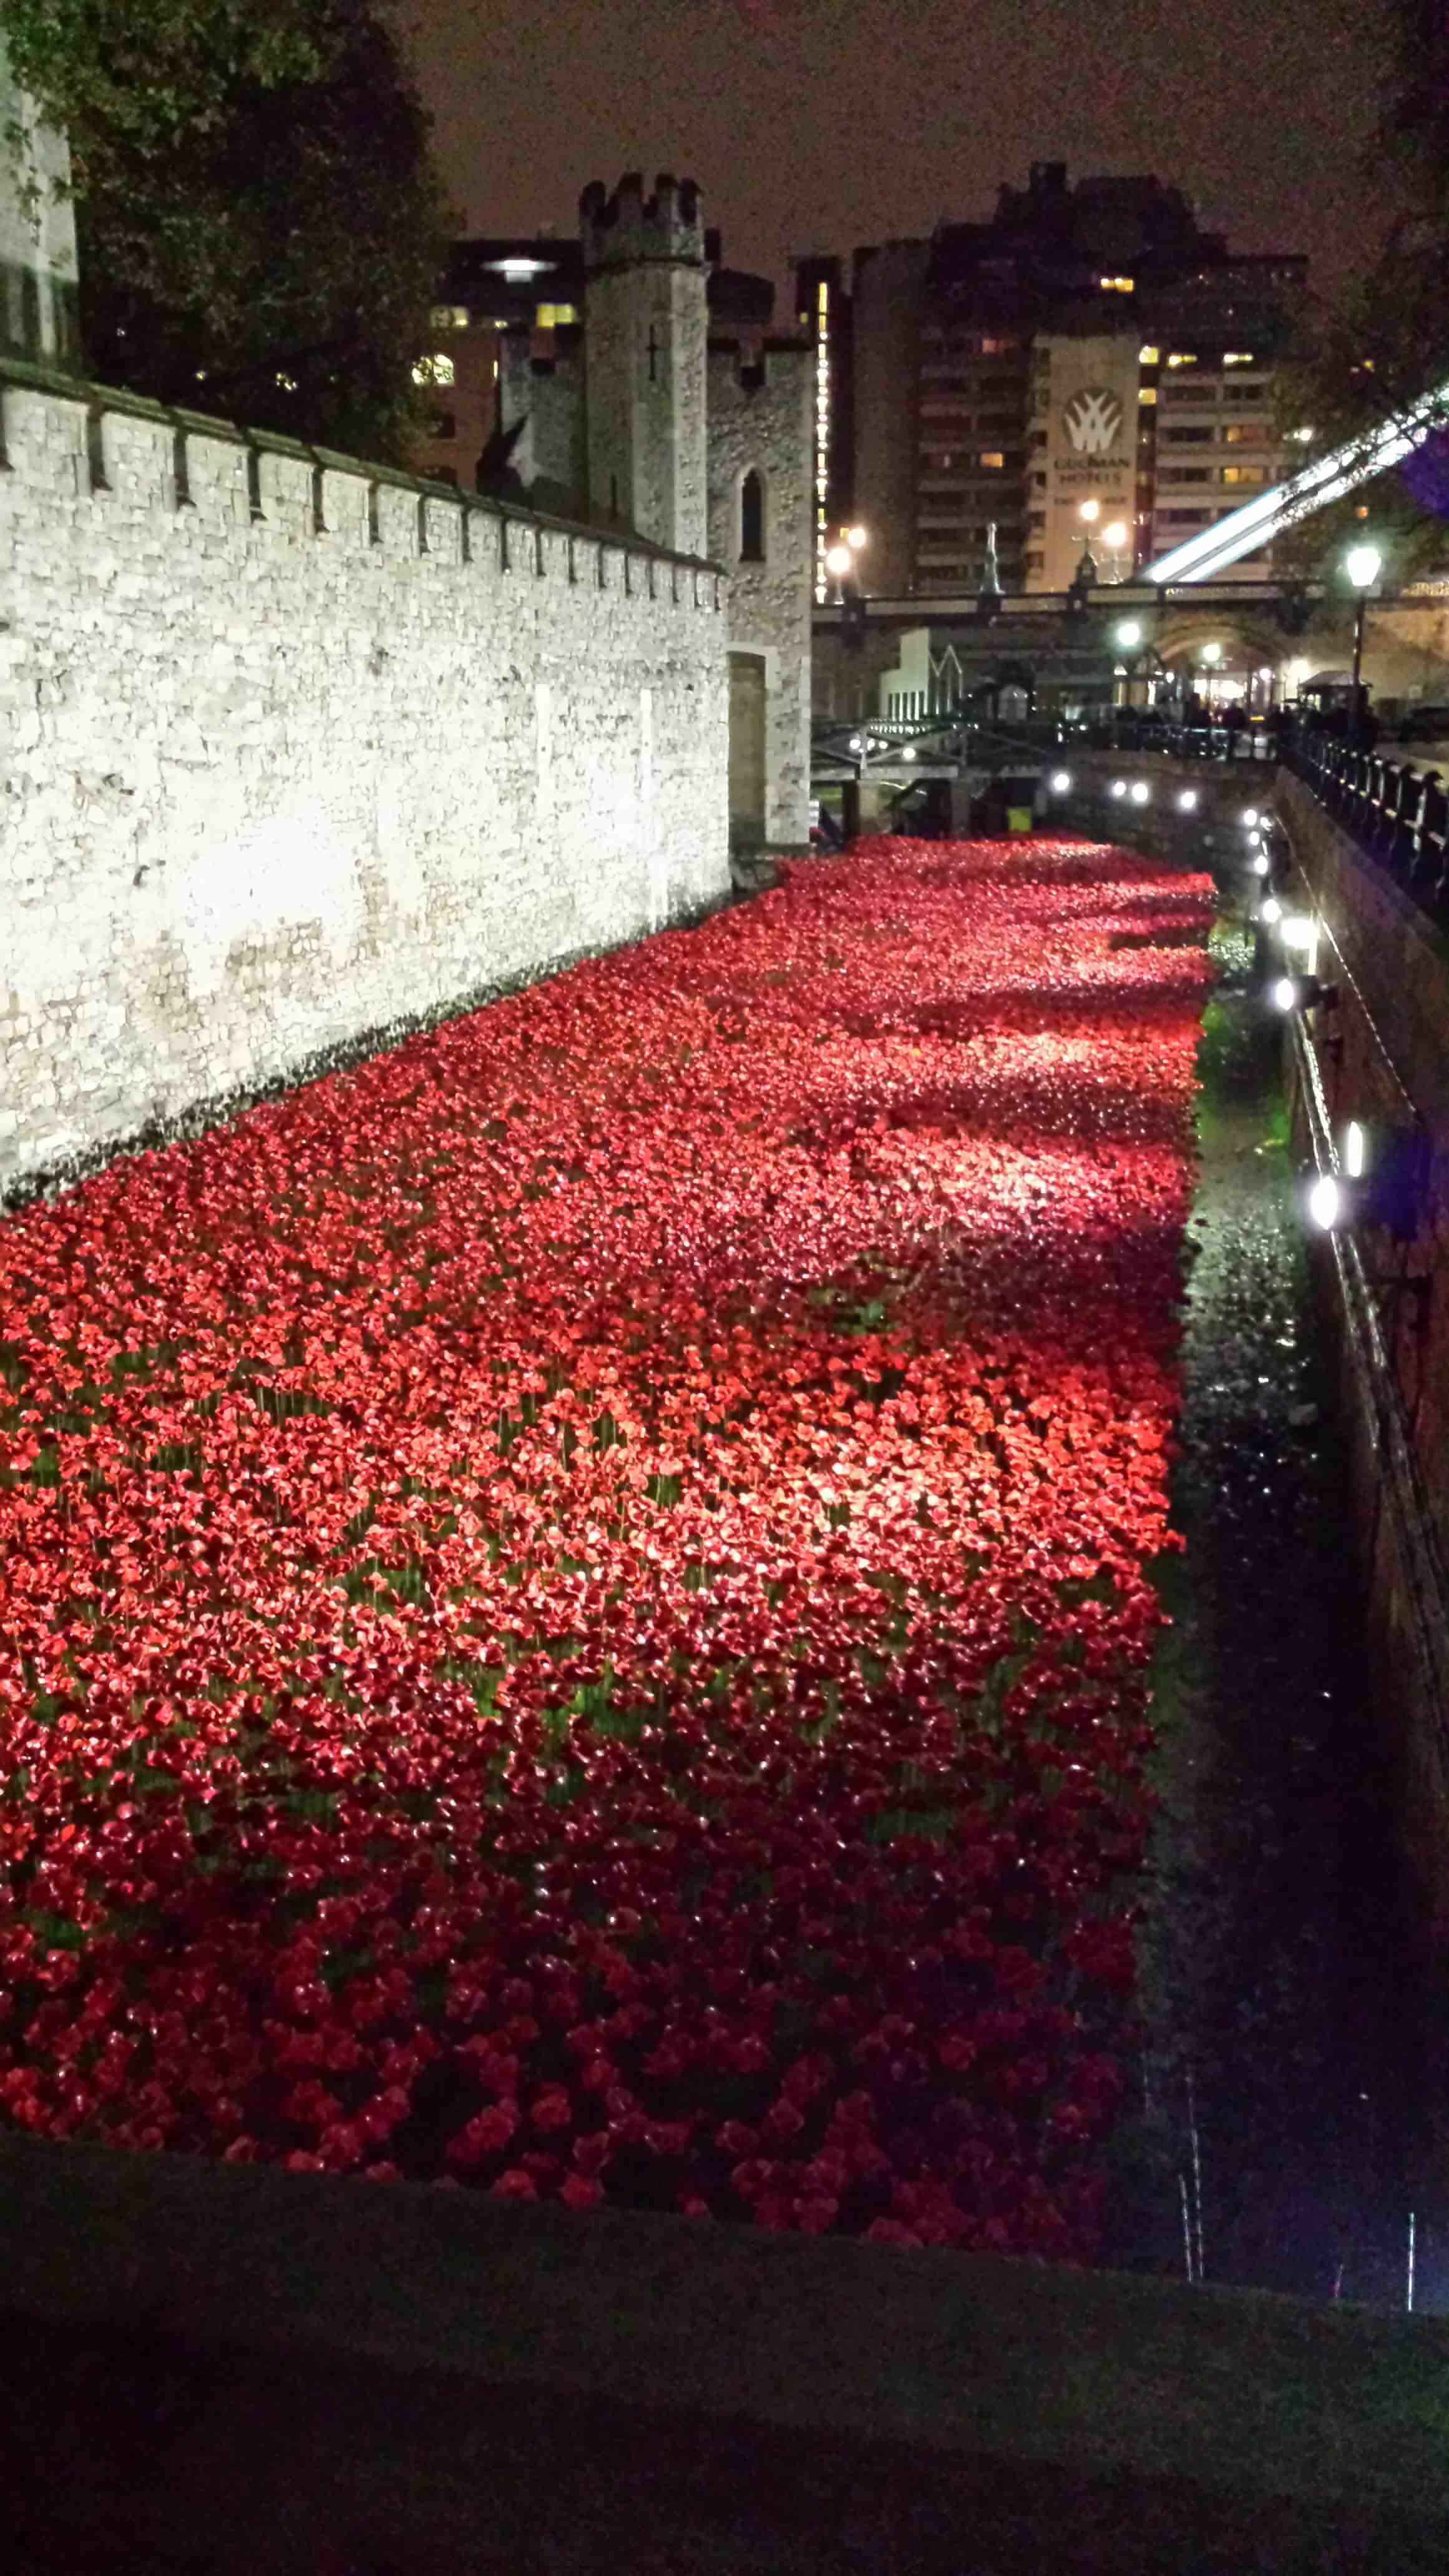 Tower mote filled with poppies.